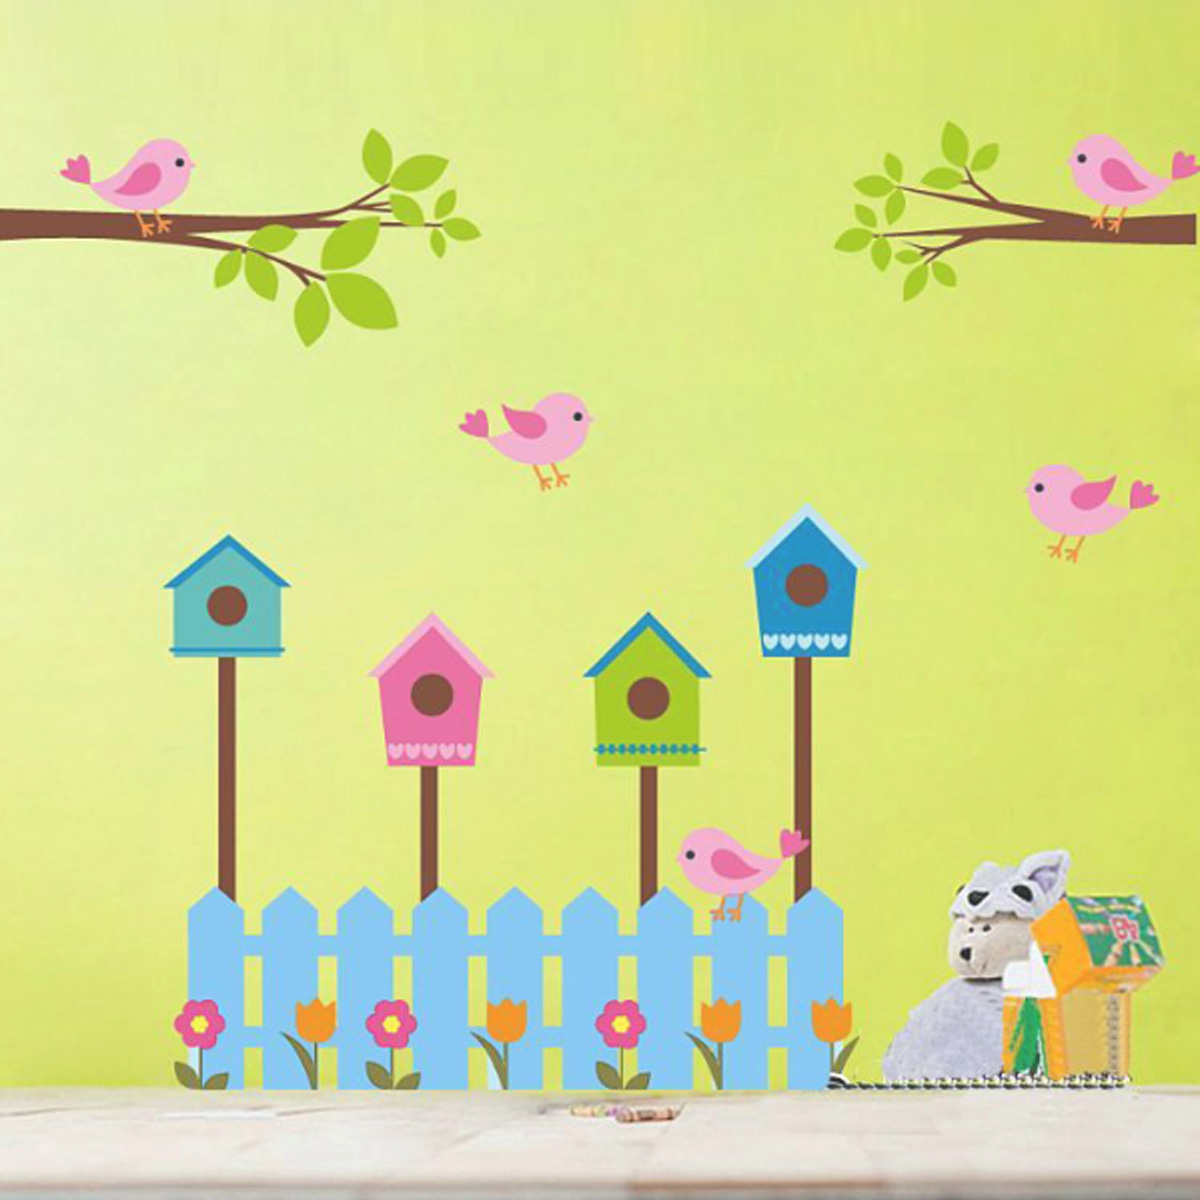 Bird House Tree Flower DIY Removable Wall Sticker Mural Decal Home Room Decor